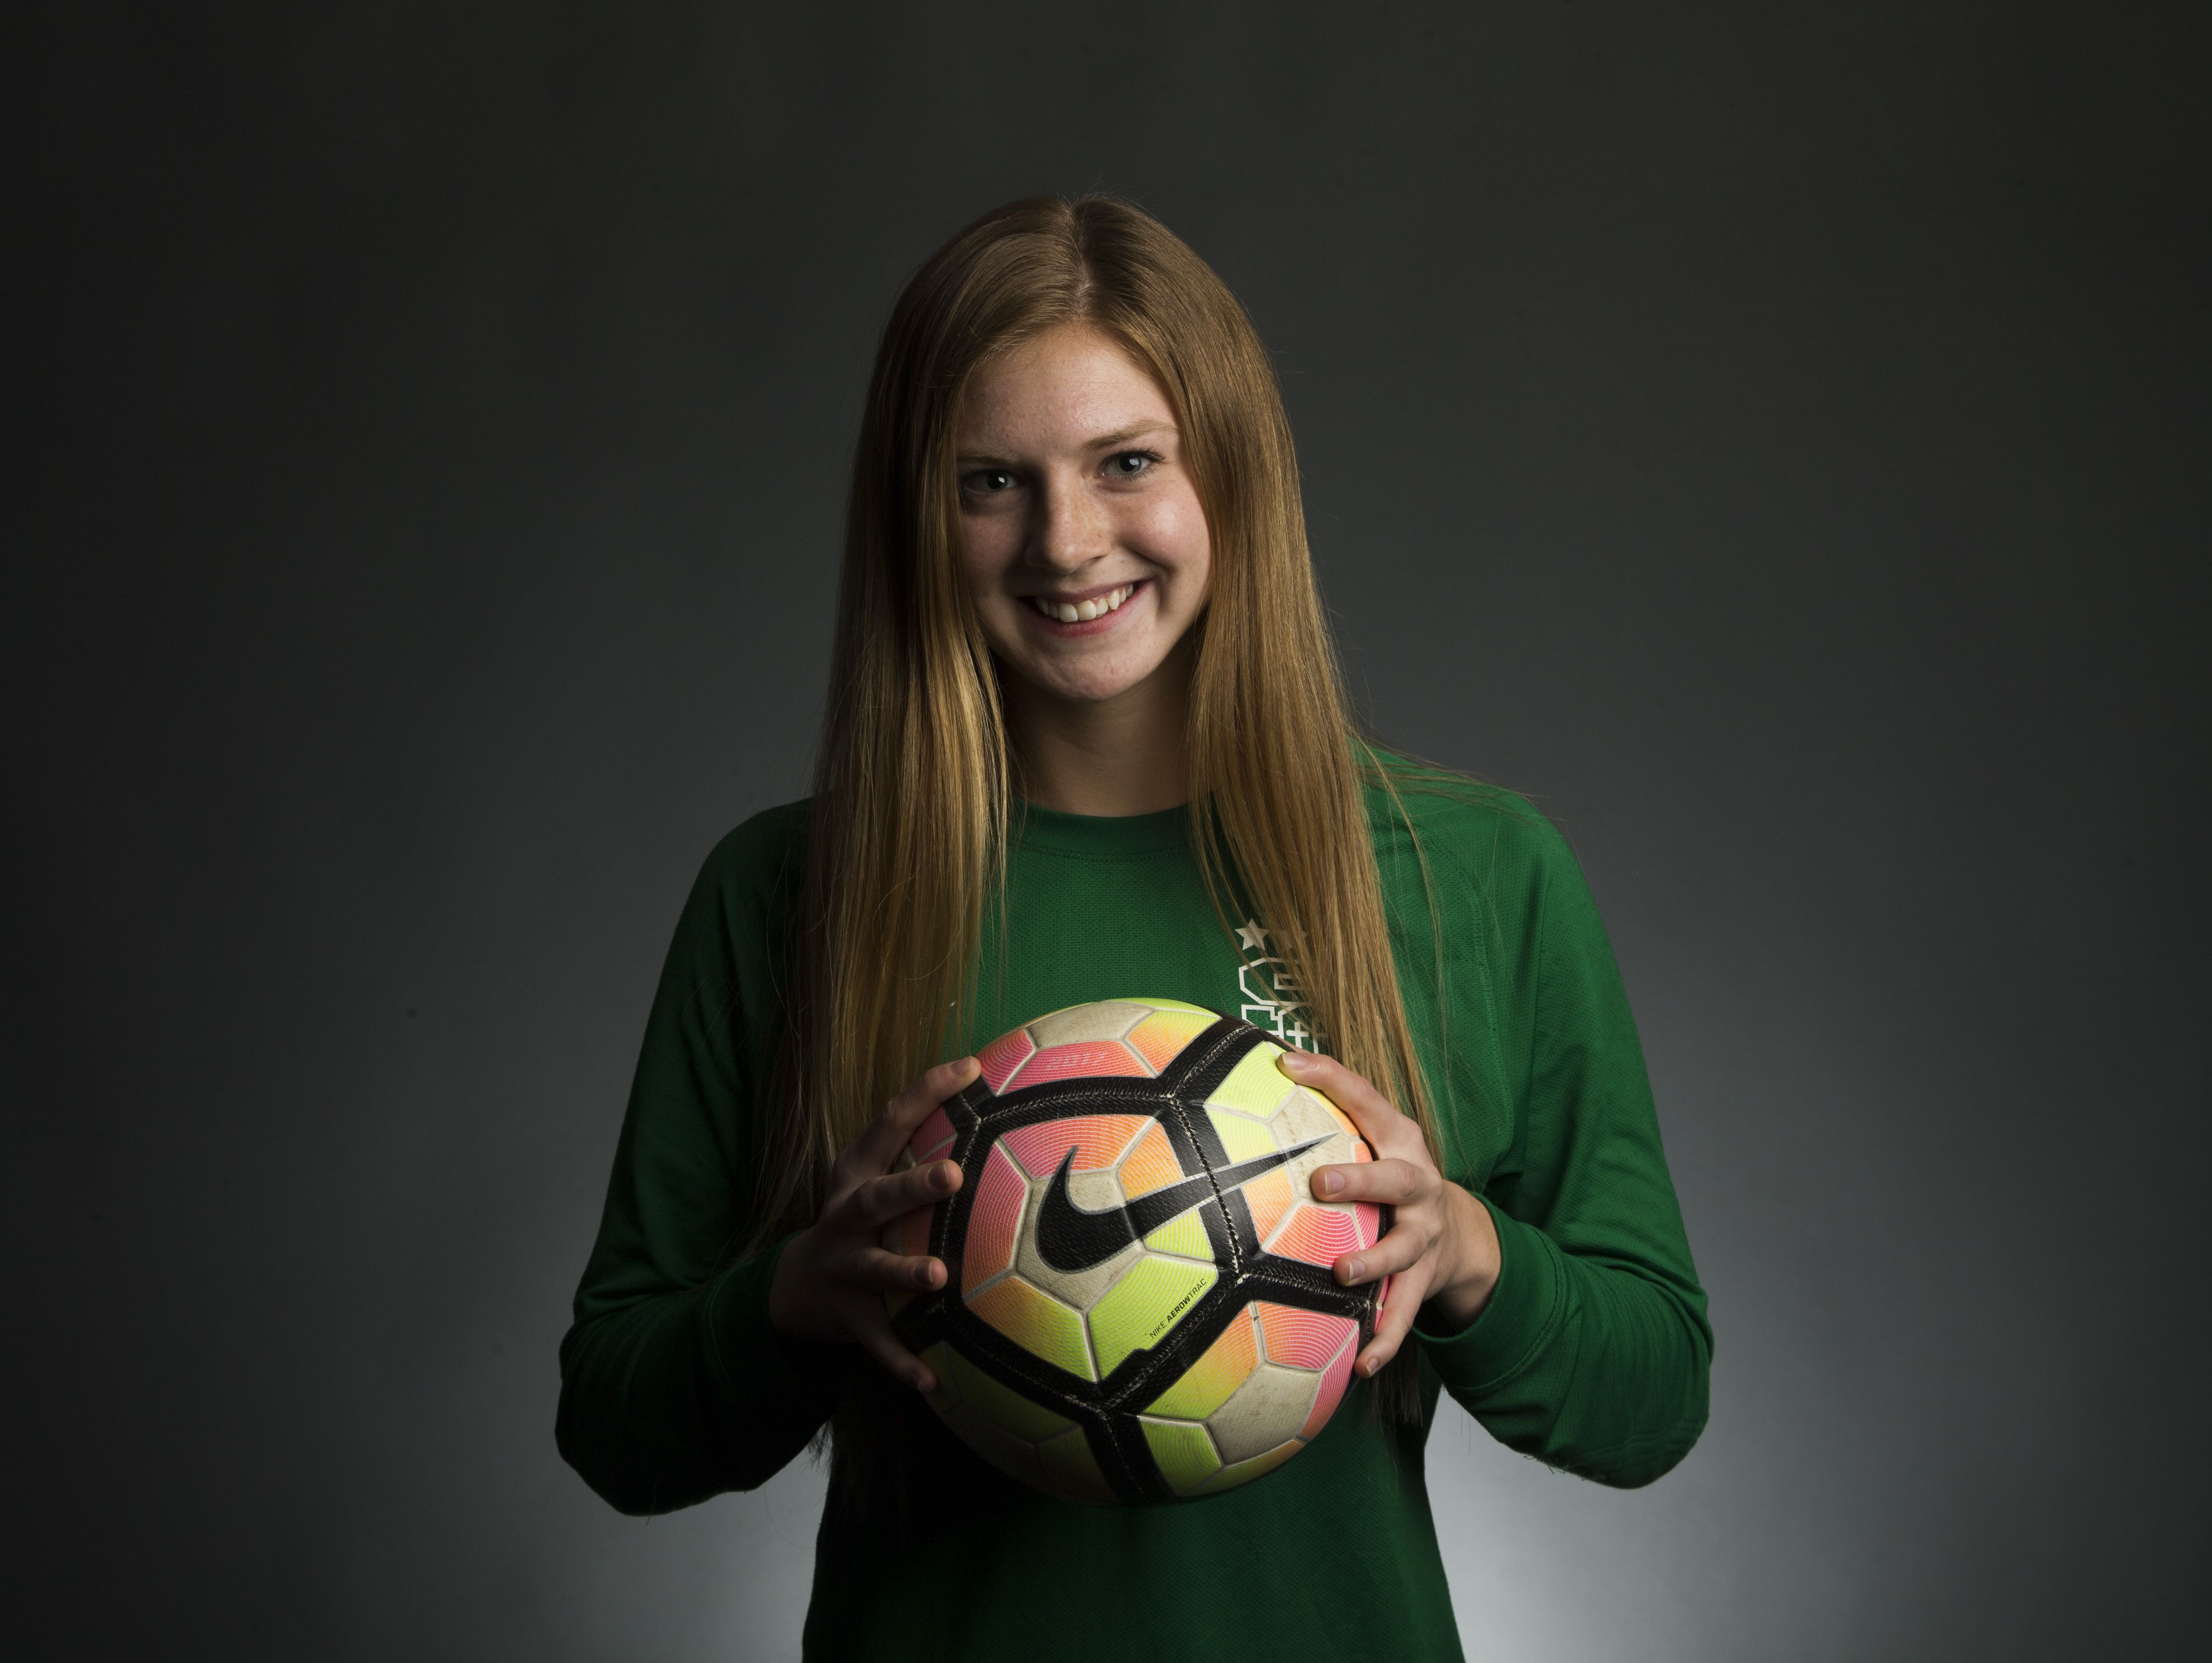 Tucson Salpointe Catholic junior goalkeeper Madison Hargis is a finalist for the azcentral.com Sports Awards Small Schools Girls Soccer Athlete of the Year award.